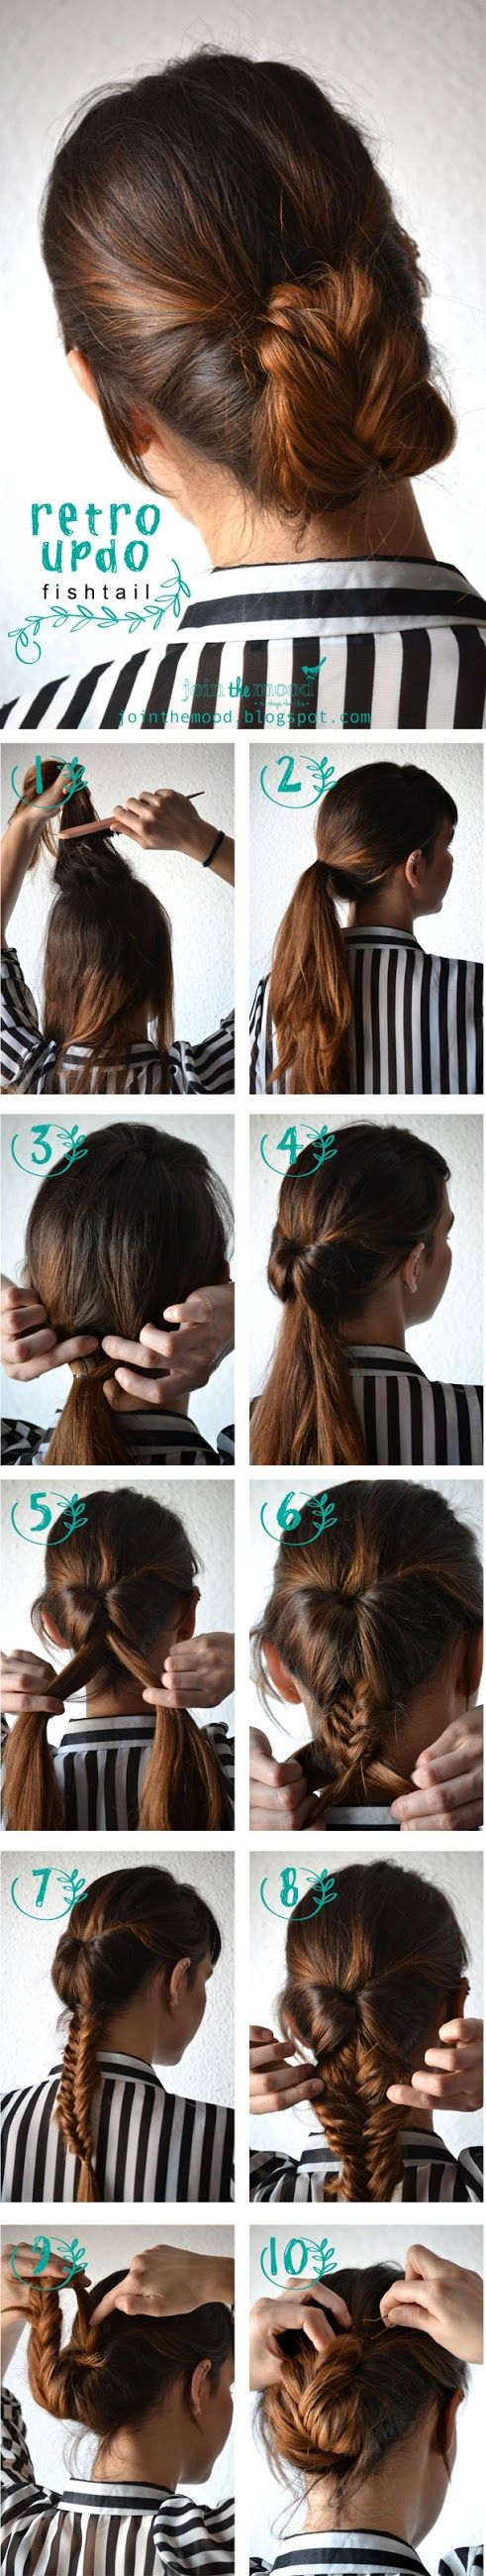 How To Make Retro Updo Fishtail | hairstyles tutorial Do two French braids down the sides into the pony. Then either braid or fishtail for flip